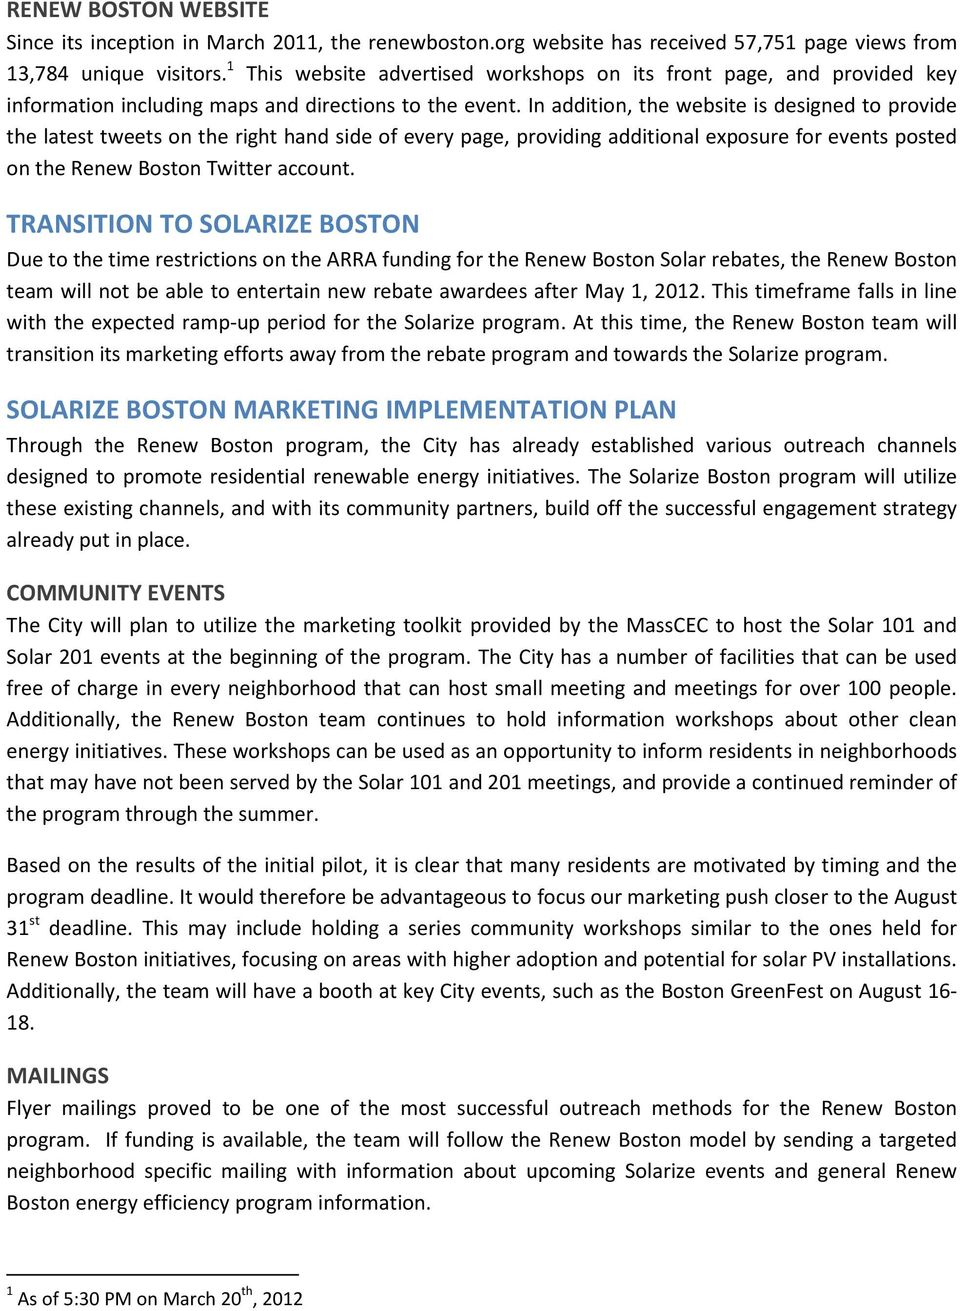 In addition, the website is designed to provide the latest tweets on the right hand side of every page, providing additional exposure for events posted on the Renew Boston Twitter account.